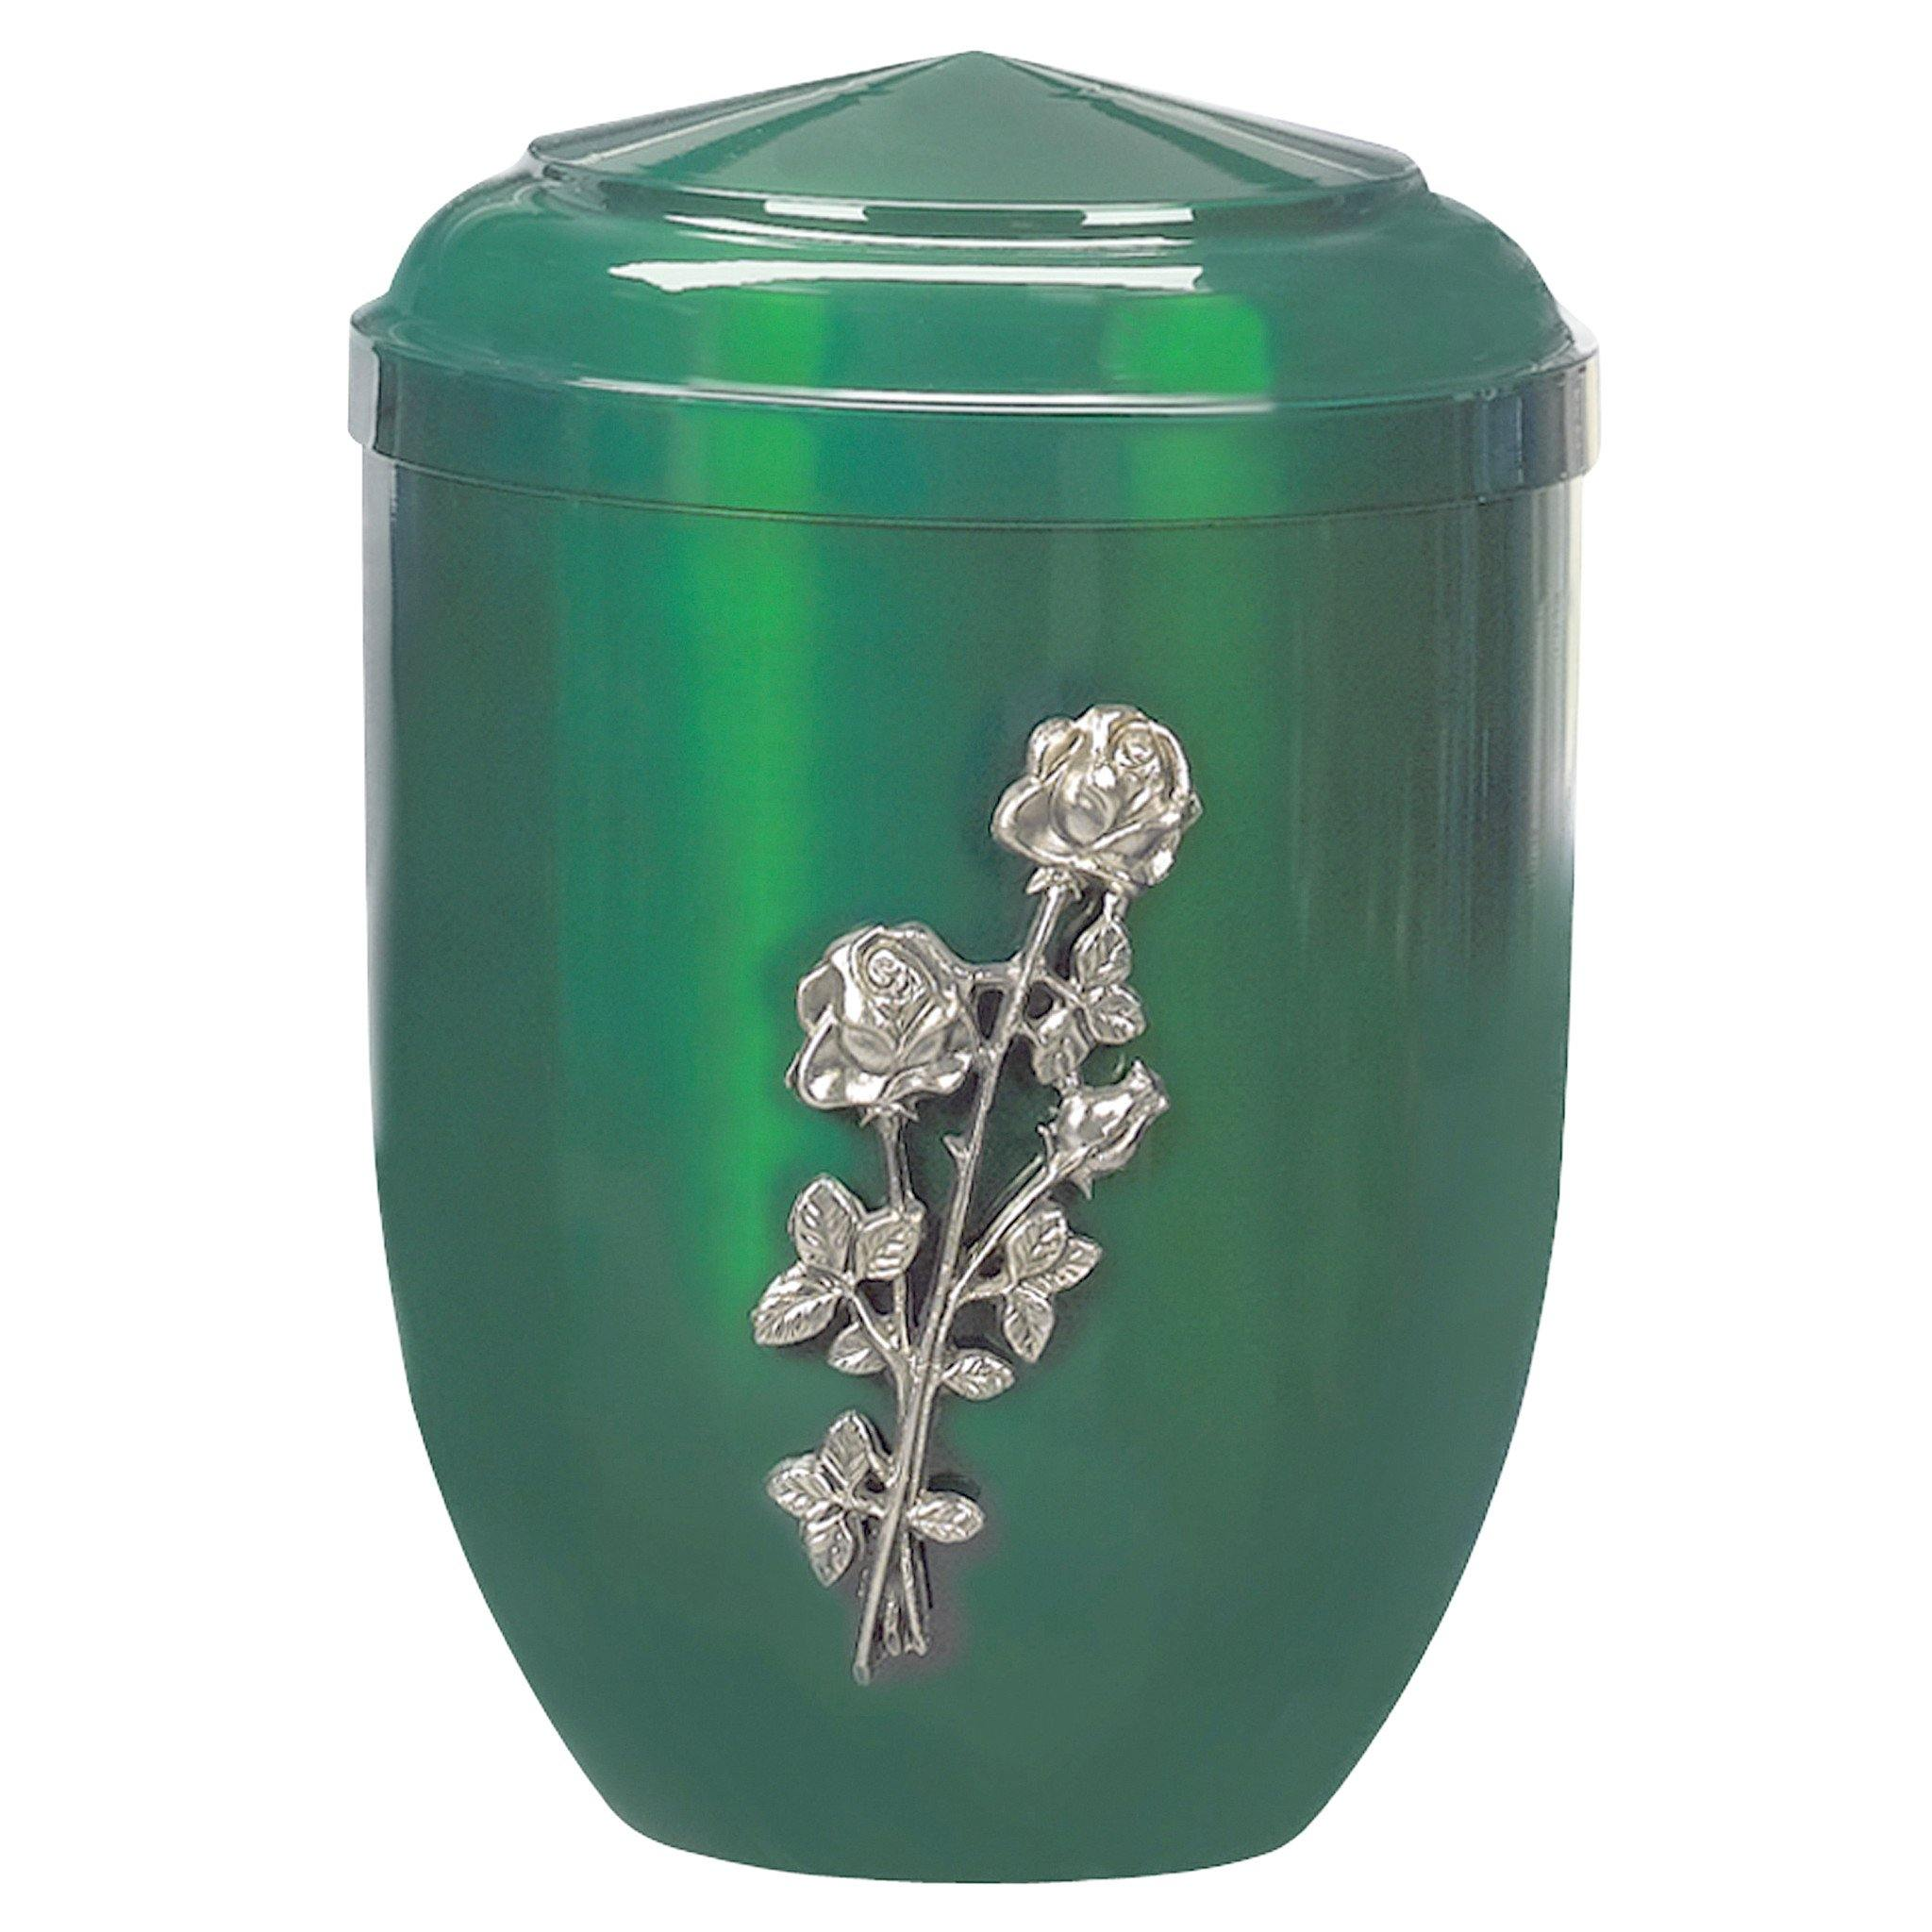 Danby Rose Cremation Ashes Urn - Urns UK